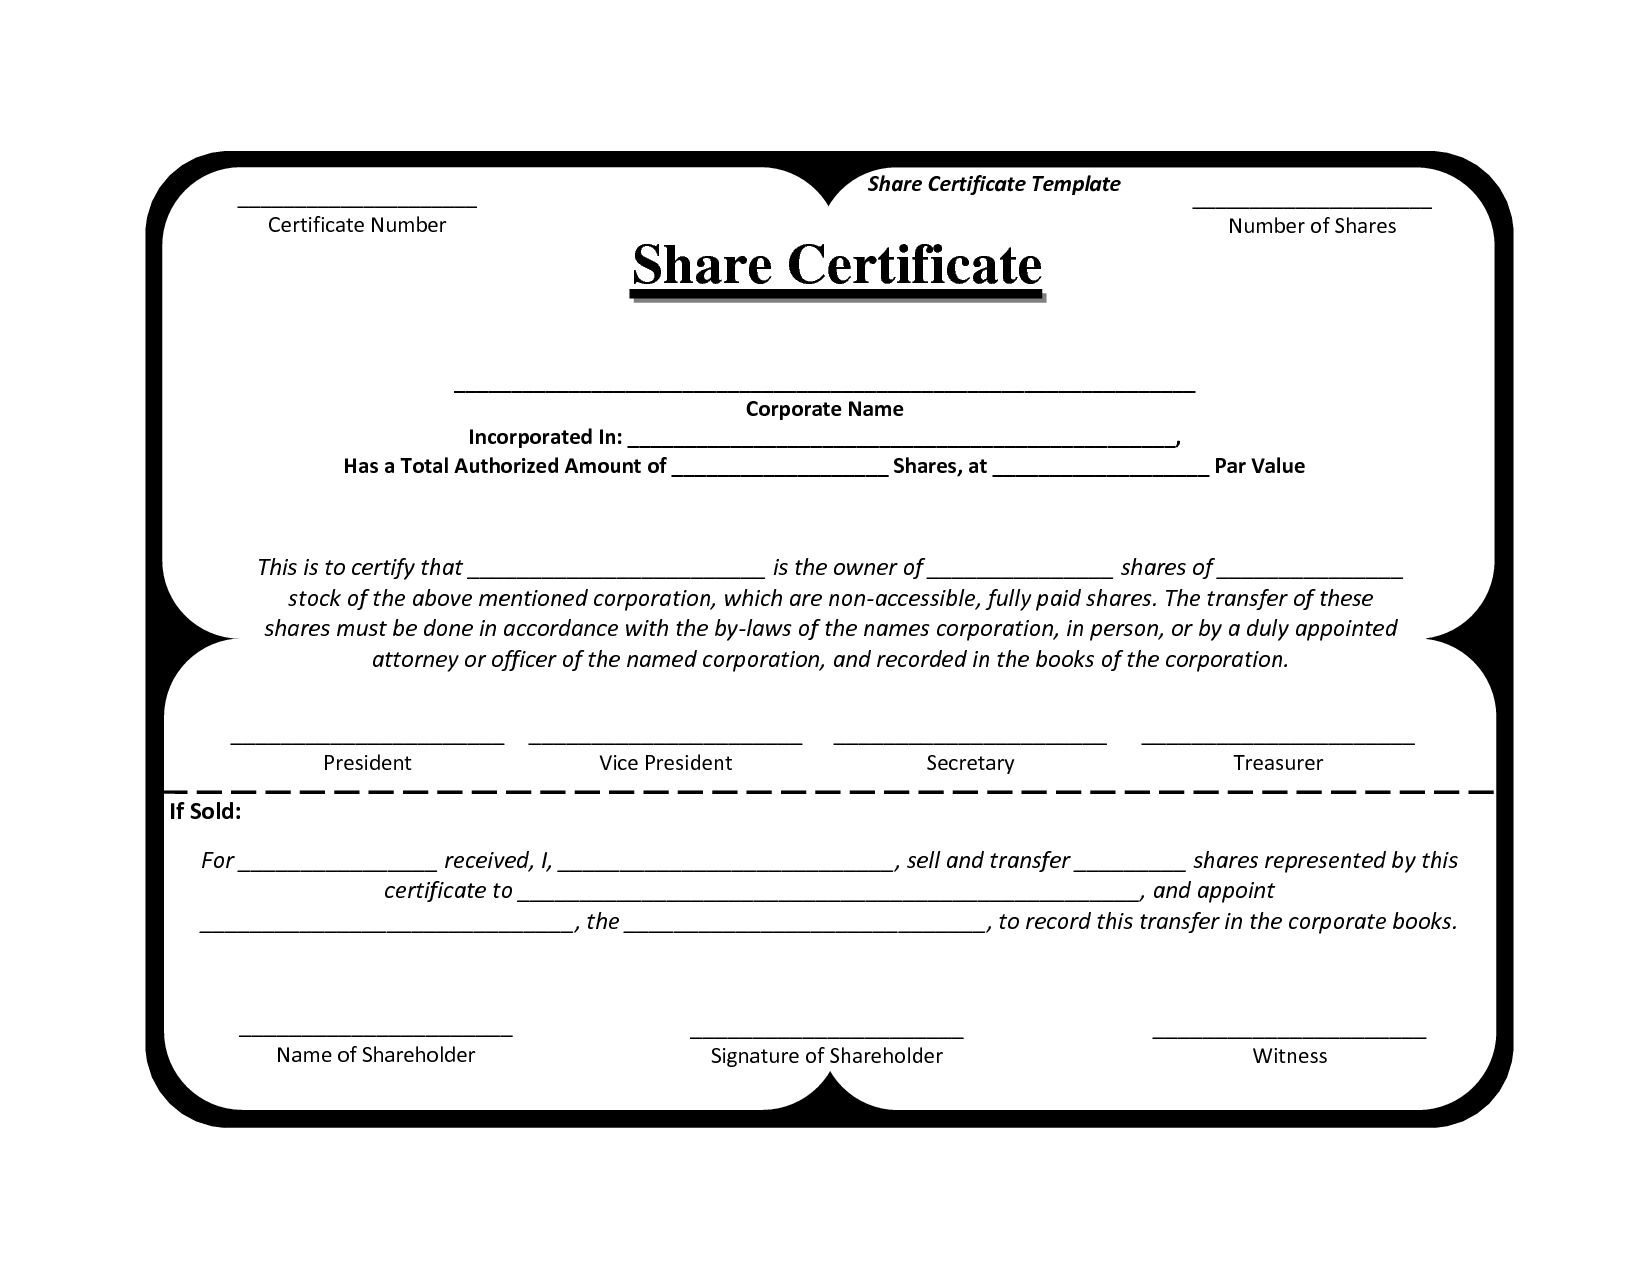 The Glamorous Template Share Certificate Rbscqi9v Share Certificate In Inside Corporate S Certificate Templates Birth Certificate Template Stock Certificates Share certificate template free download